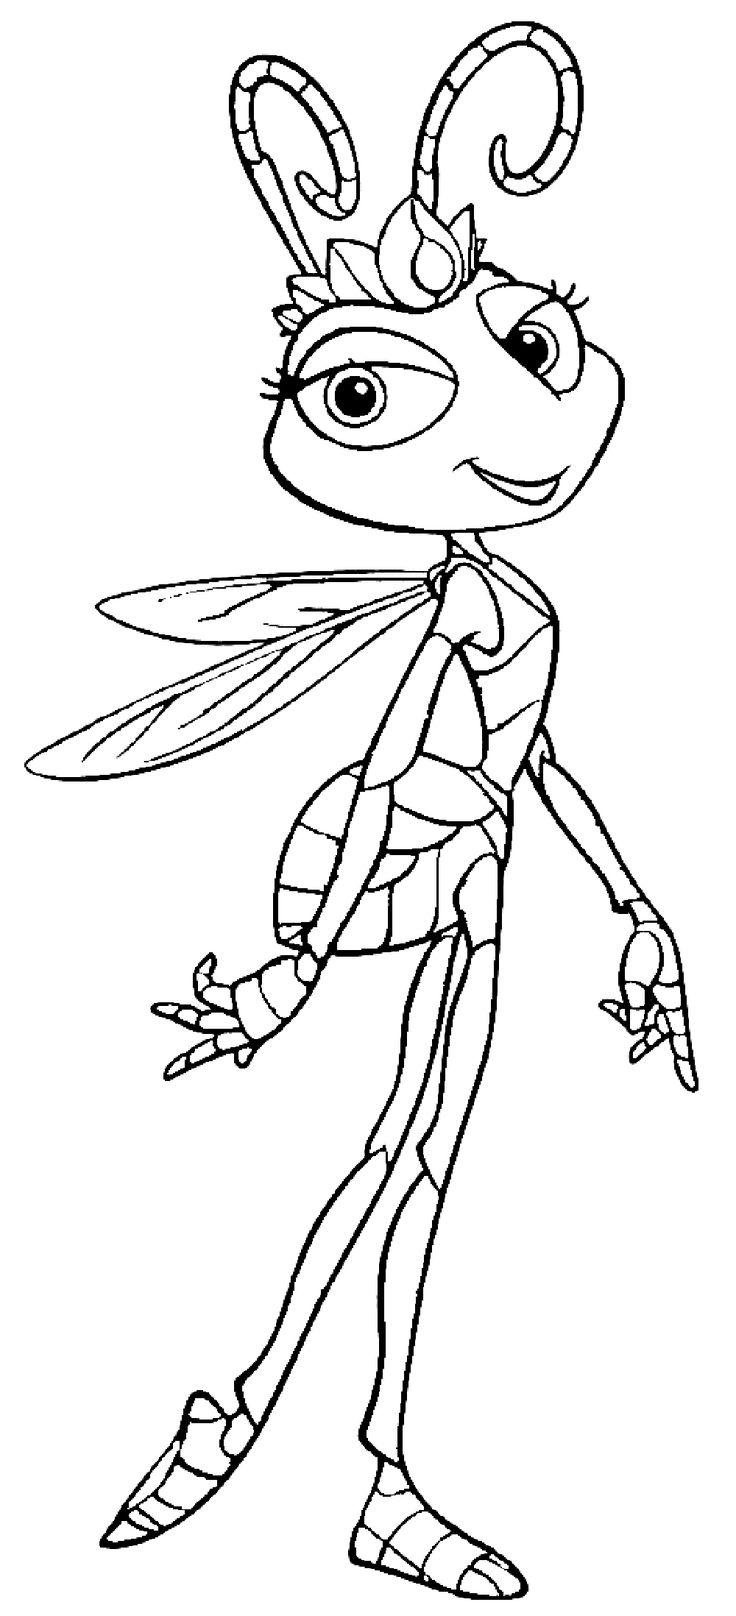 22 best a bug u0027s life coloring pages images on pinterest a bug u0027s